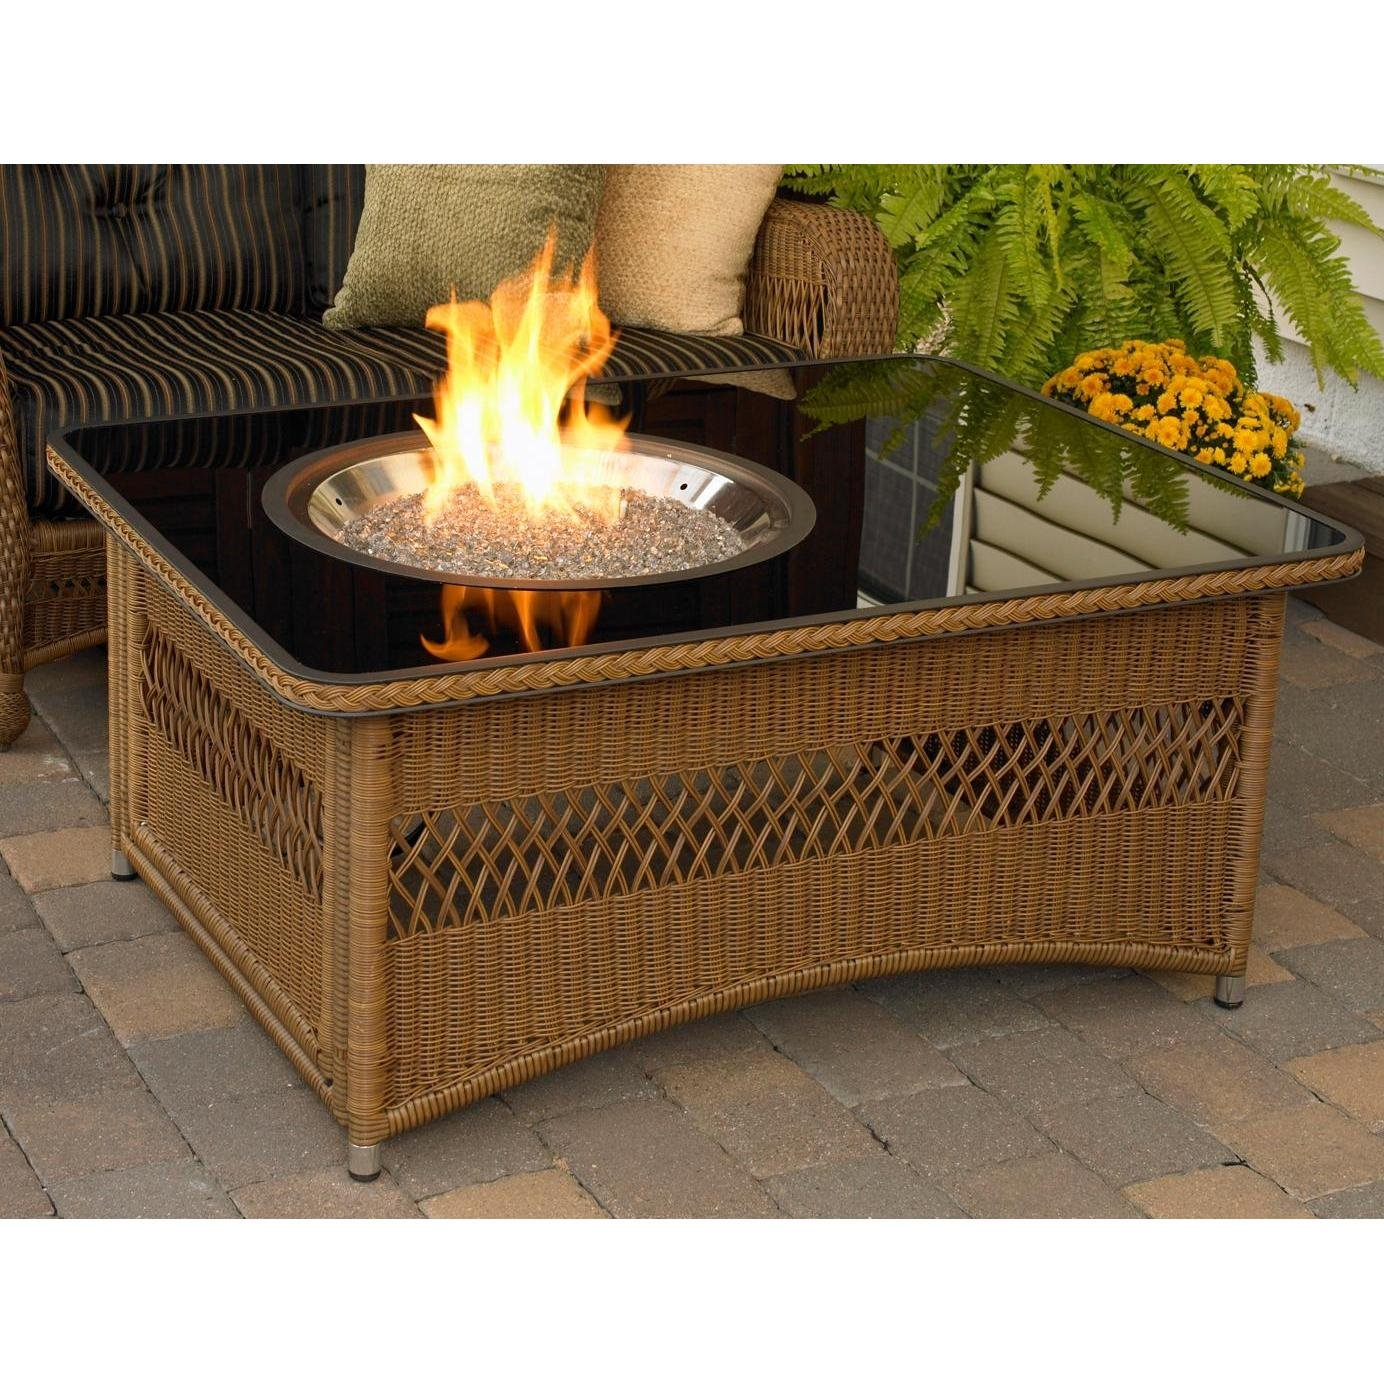 Outdoor Coffee Table Heater: Patio Heaters And Fire Pit Blog: Outdoor GreatRoom Company